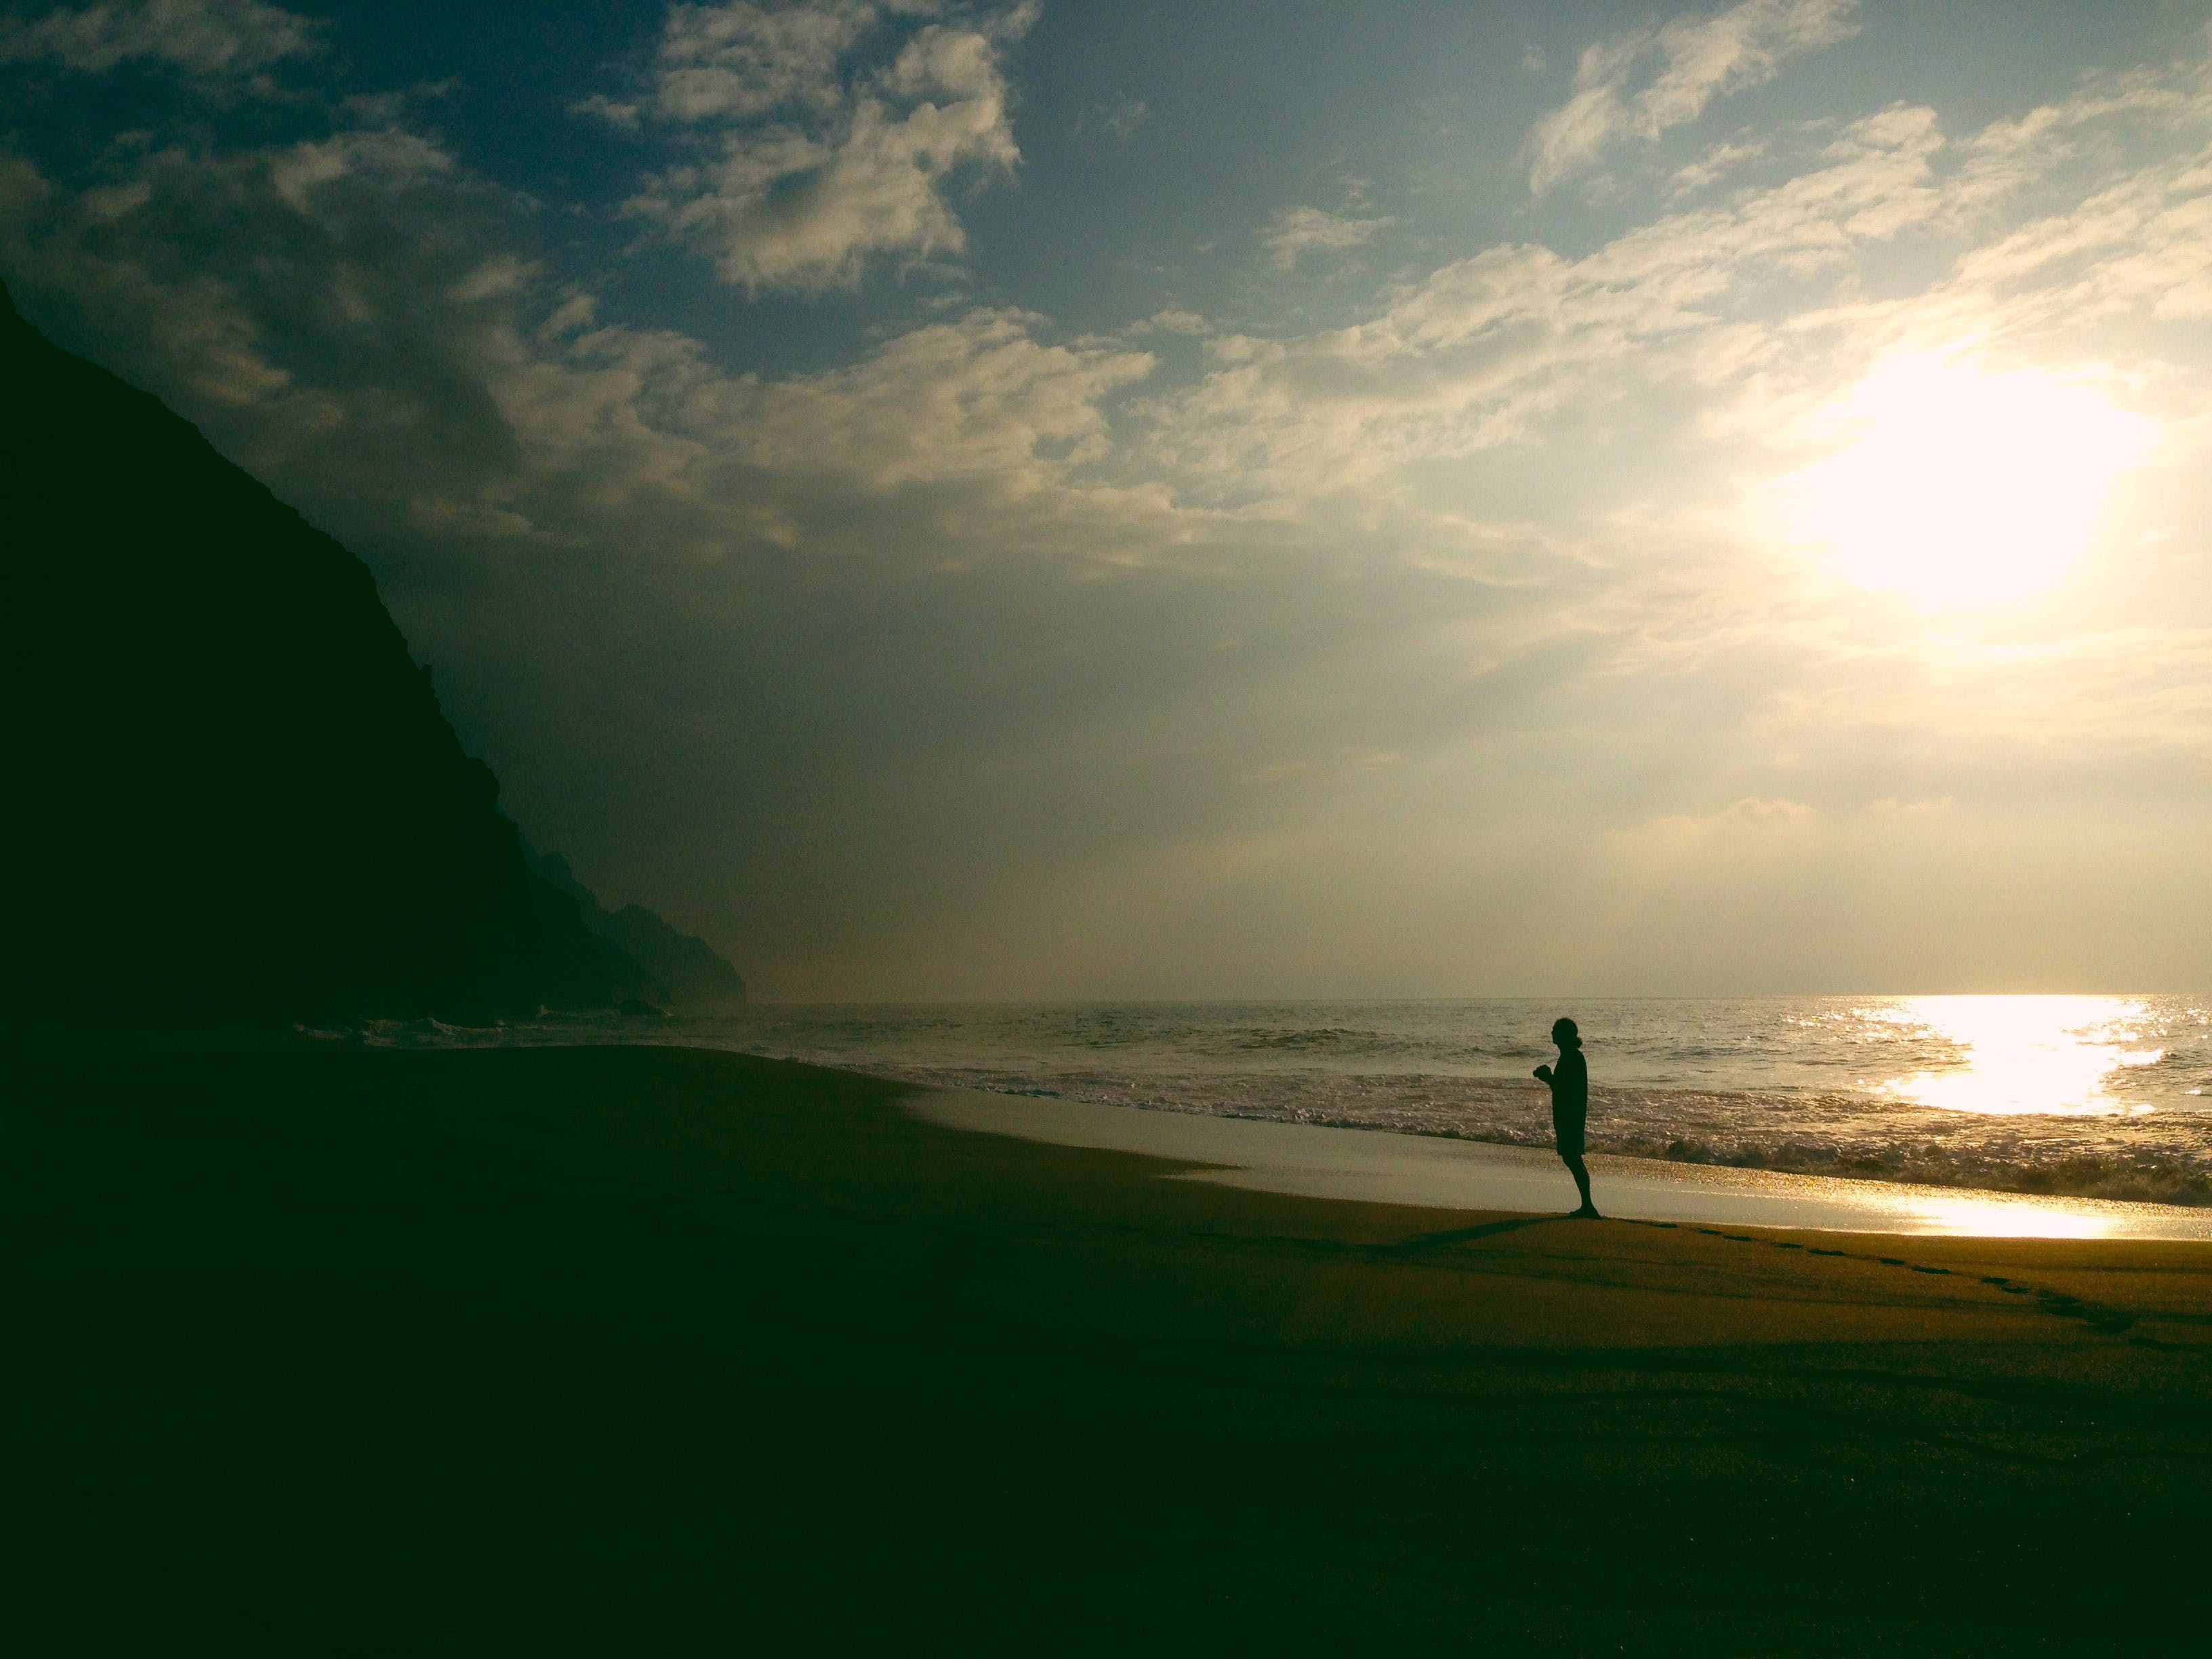 Silhouette Photography of Person Standing on Stand Beside Seashore during Sunset